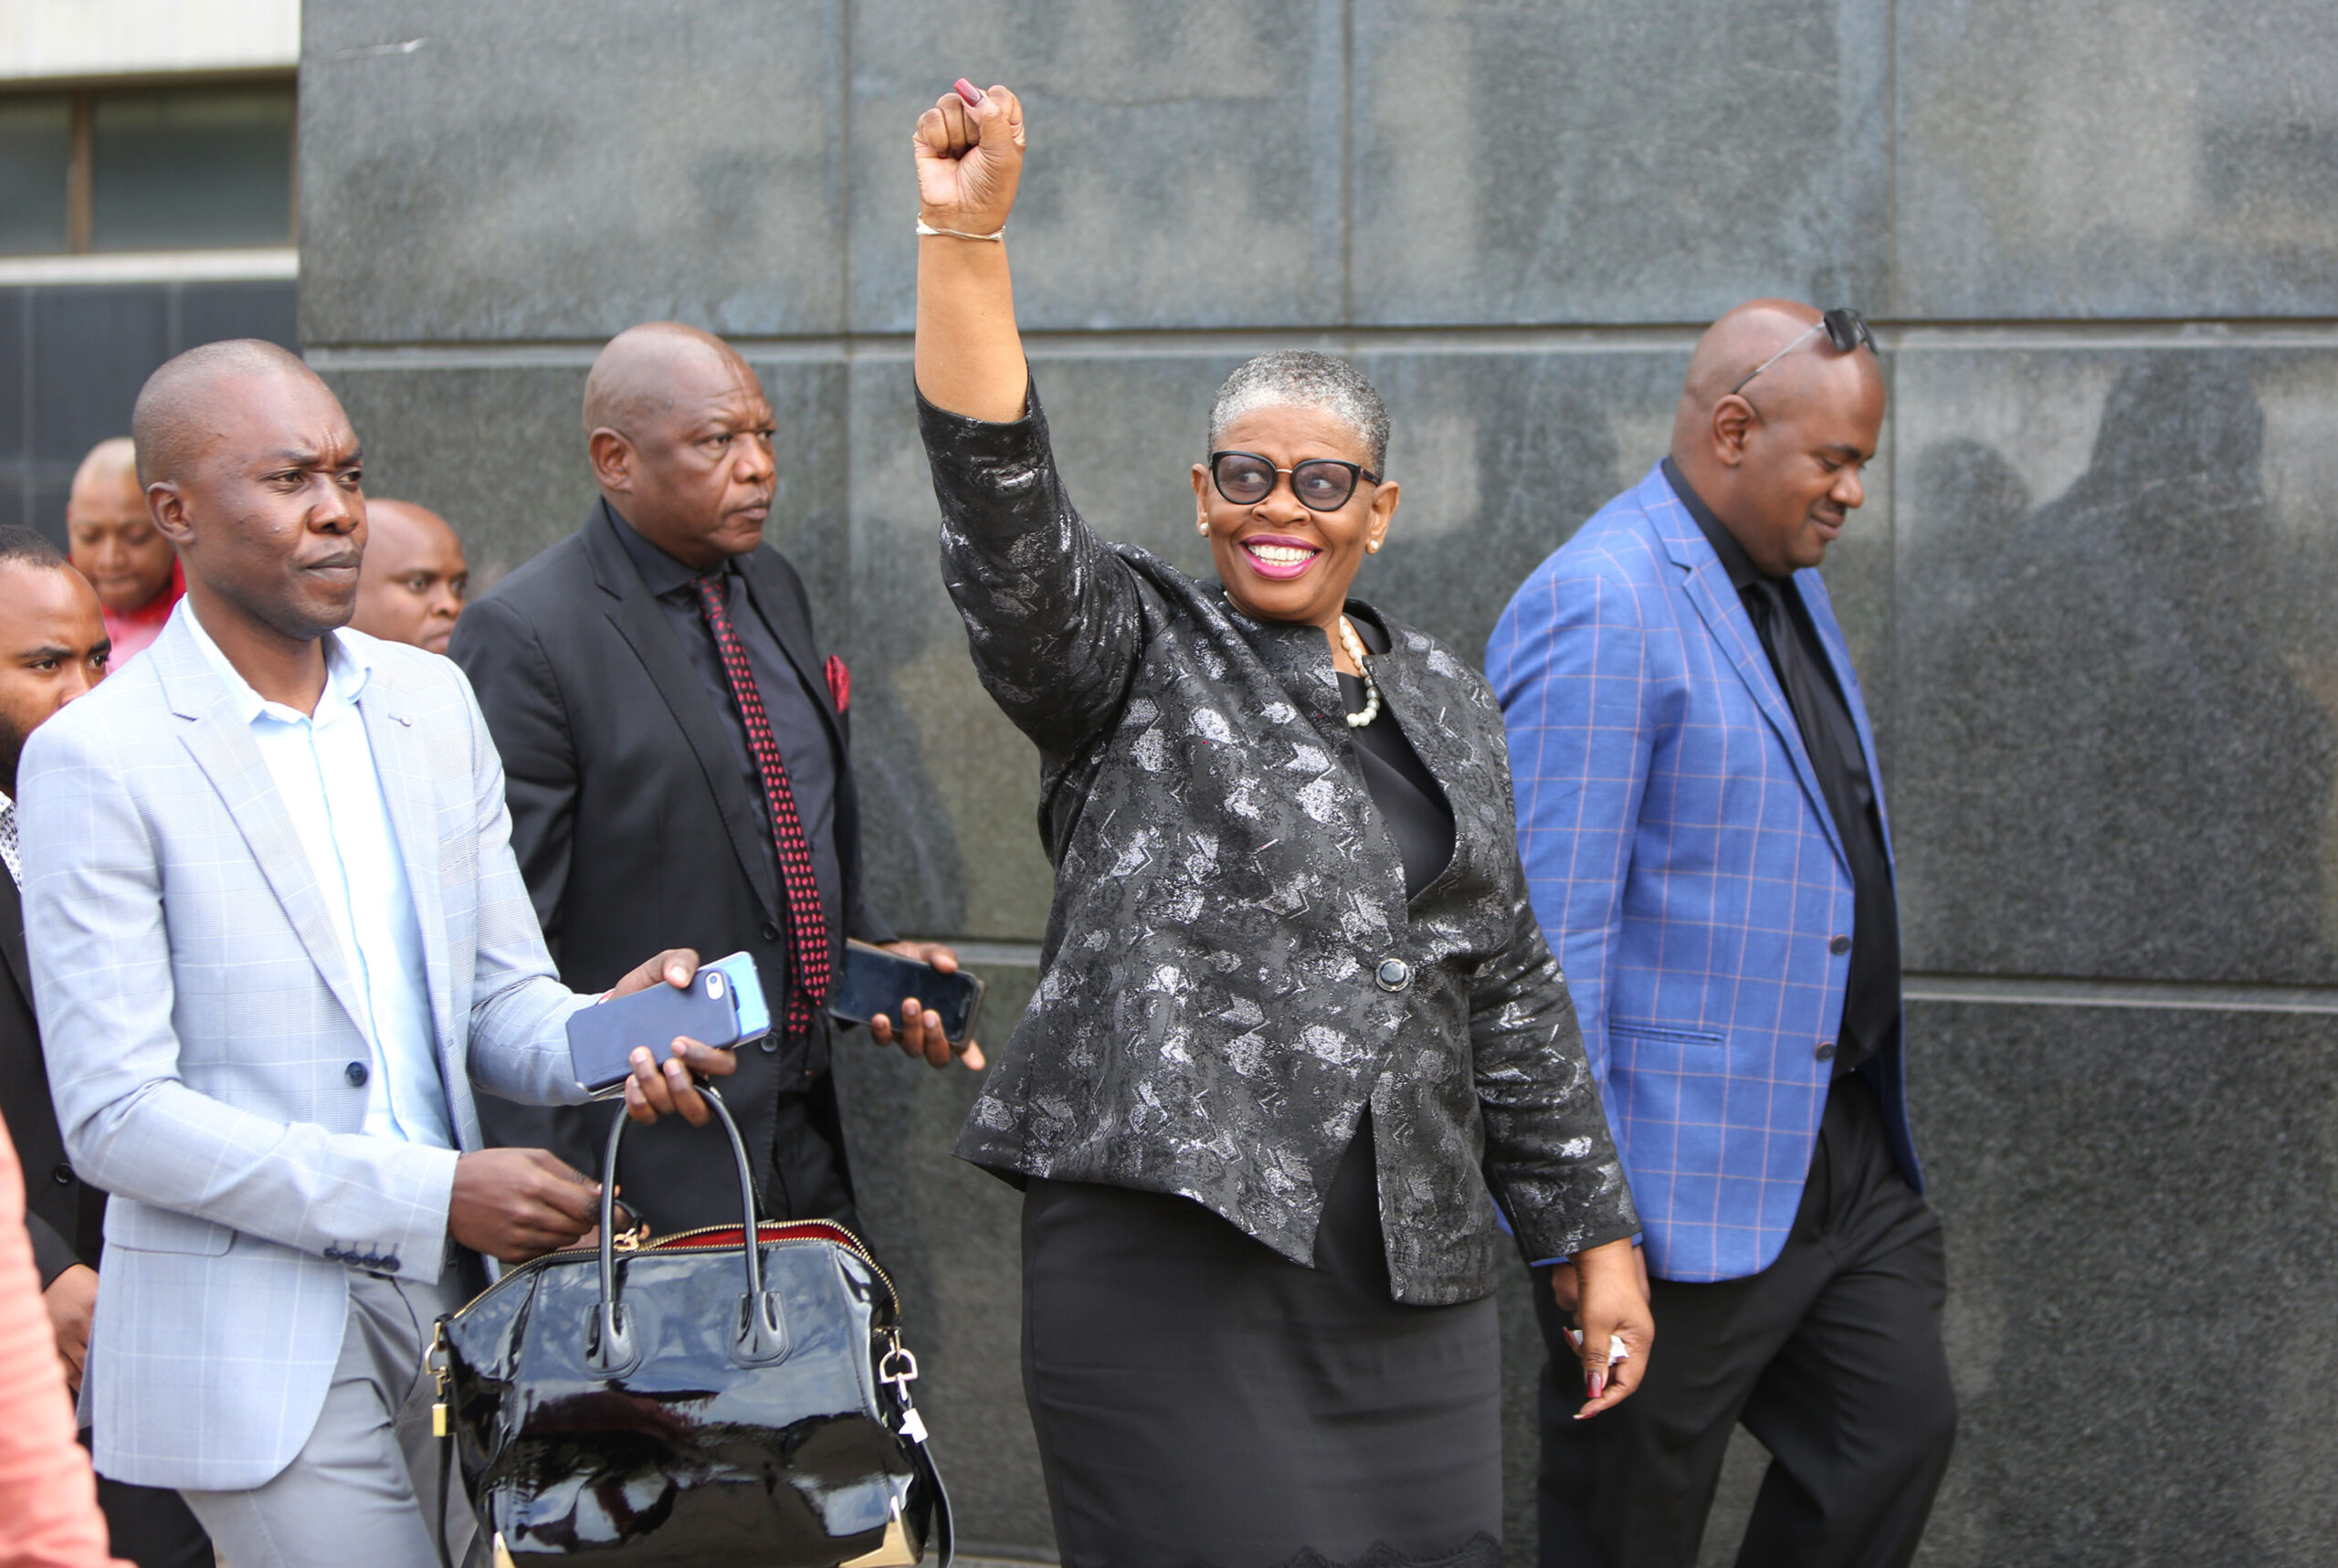 Corruption-accused Former Mayor, Zandile Gumede Returns To Office As KZN MPL